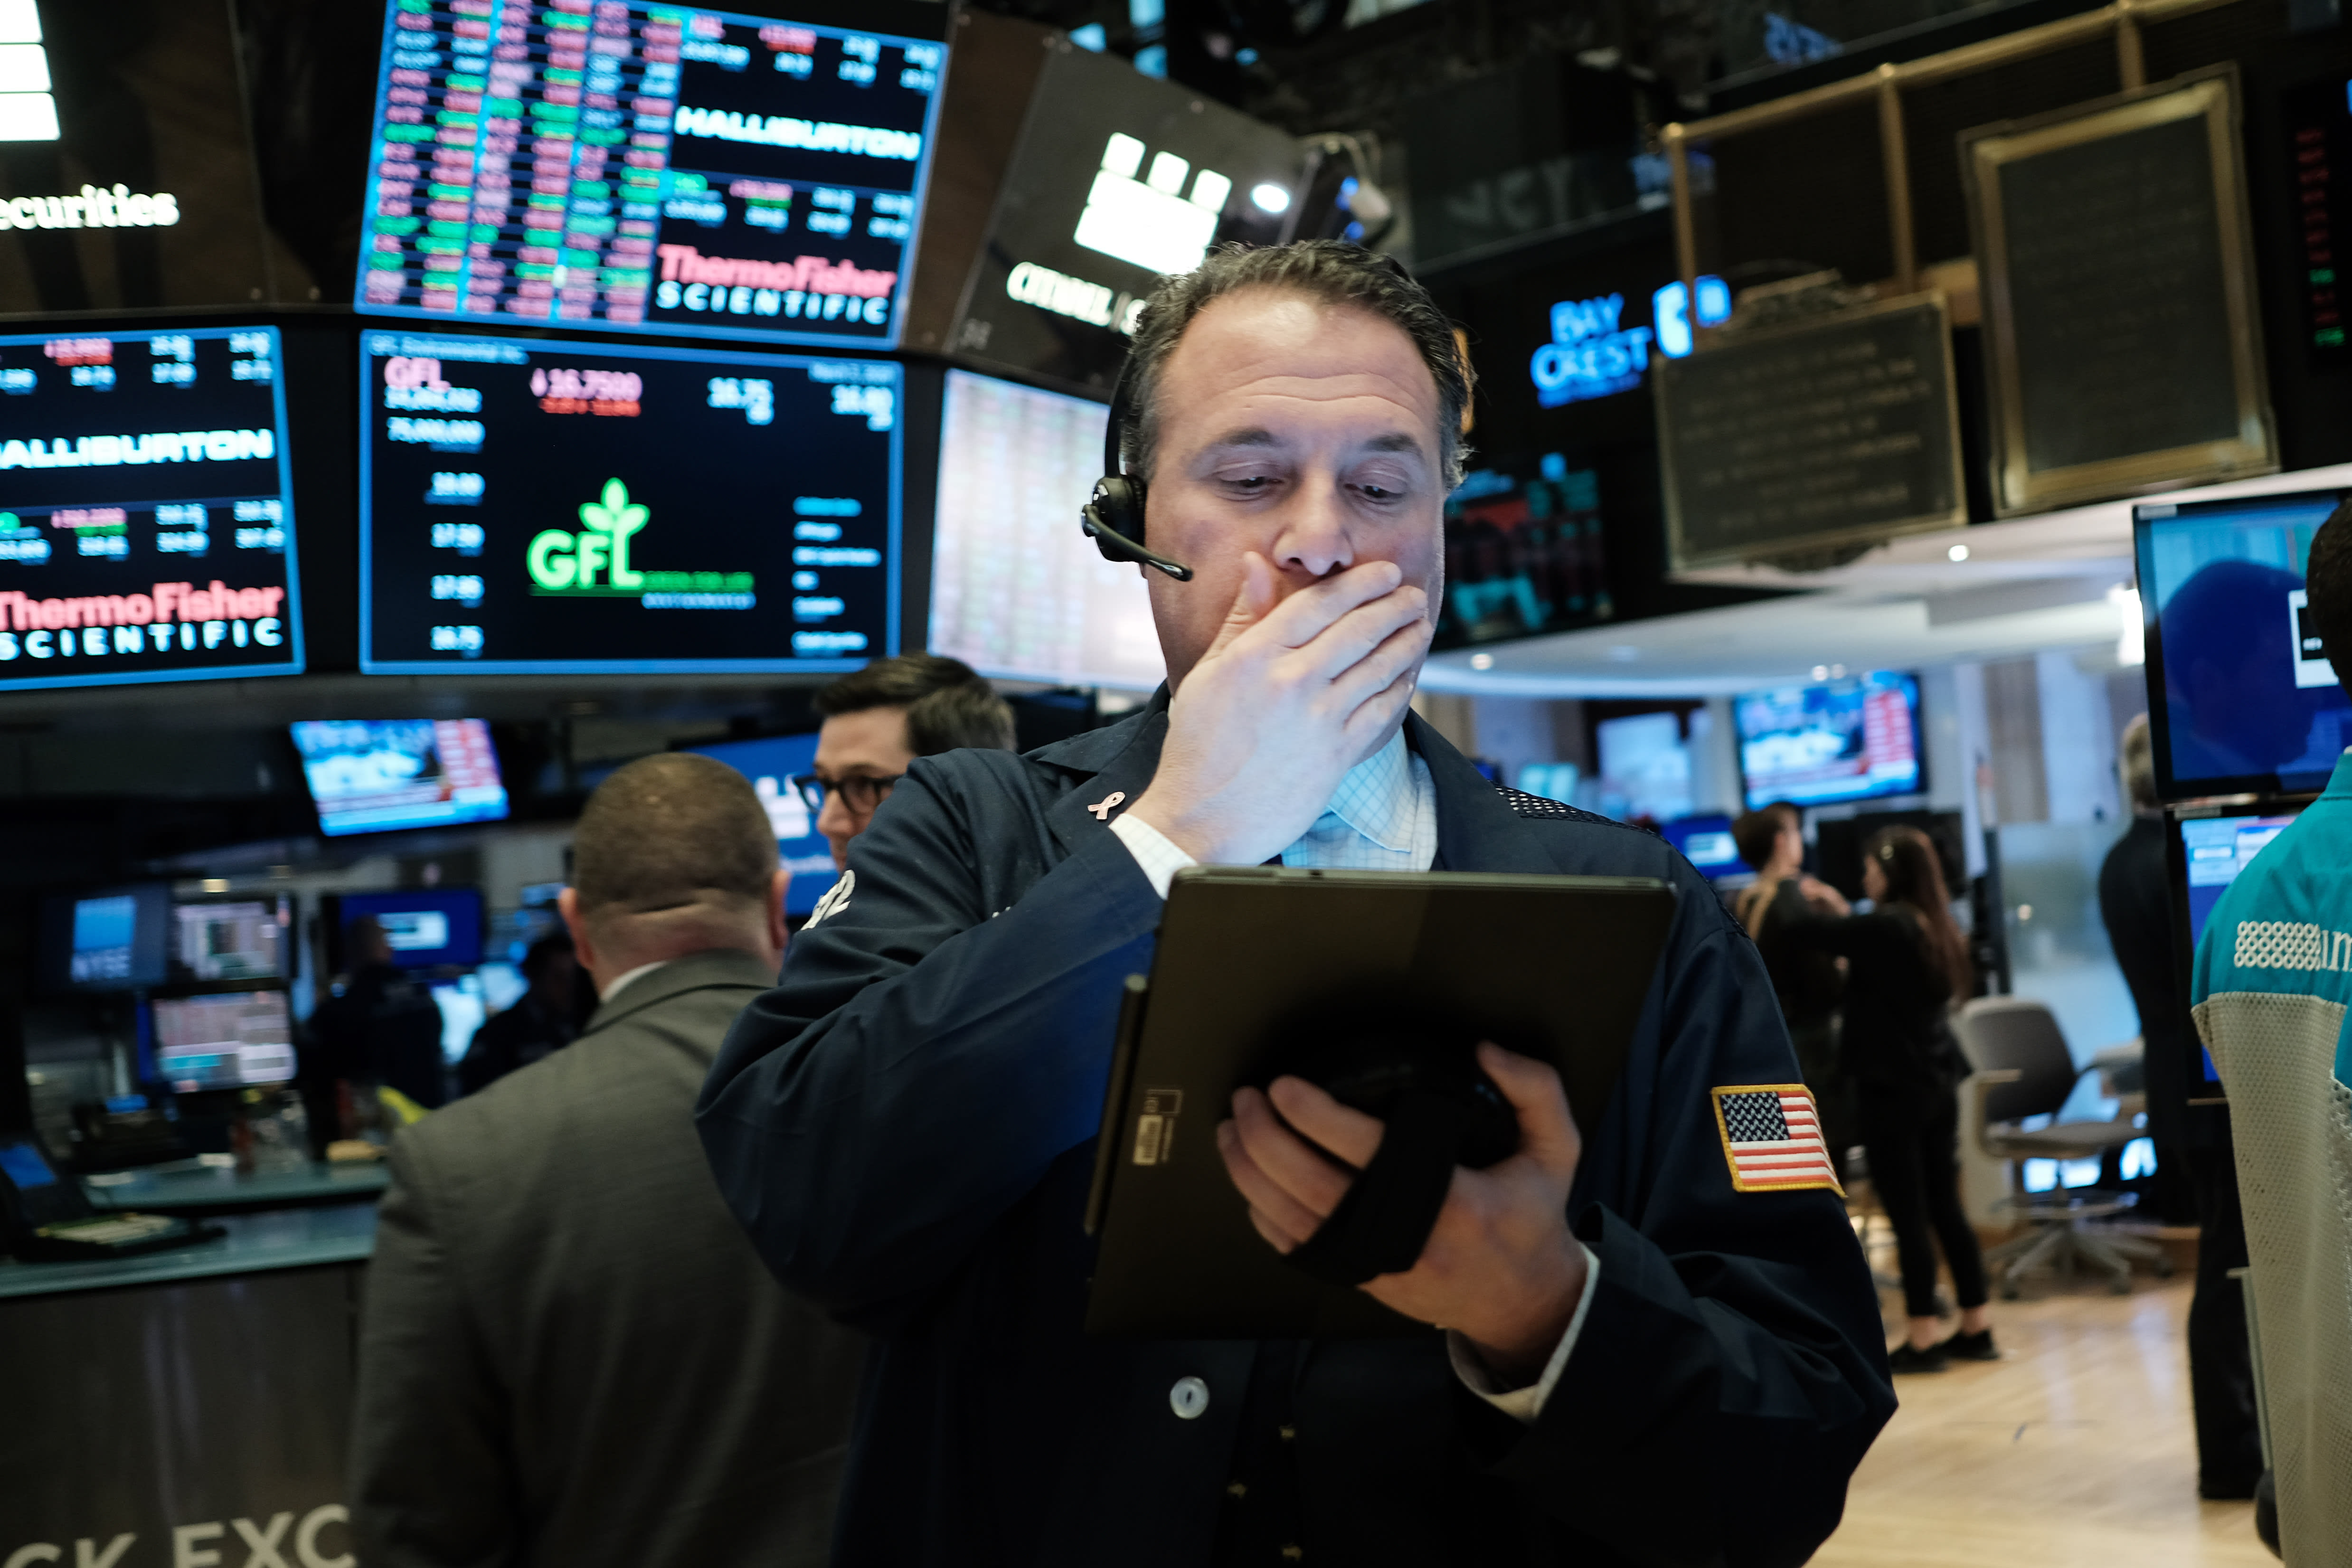 Stock market live updates: Futures point to 5% drop at the open, oil tanks 20%, 10-year hits record low